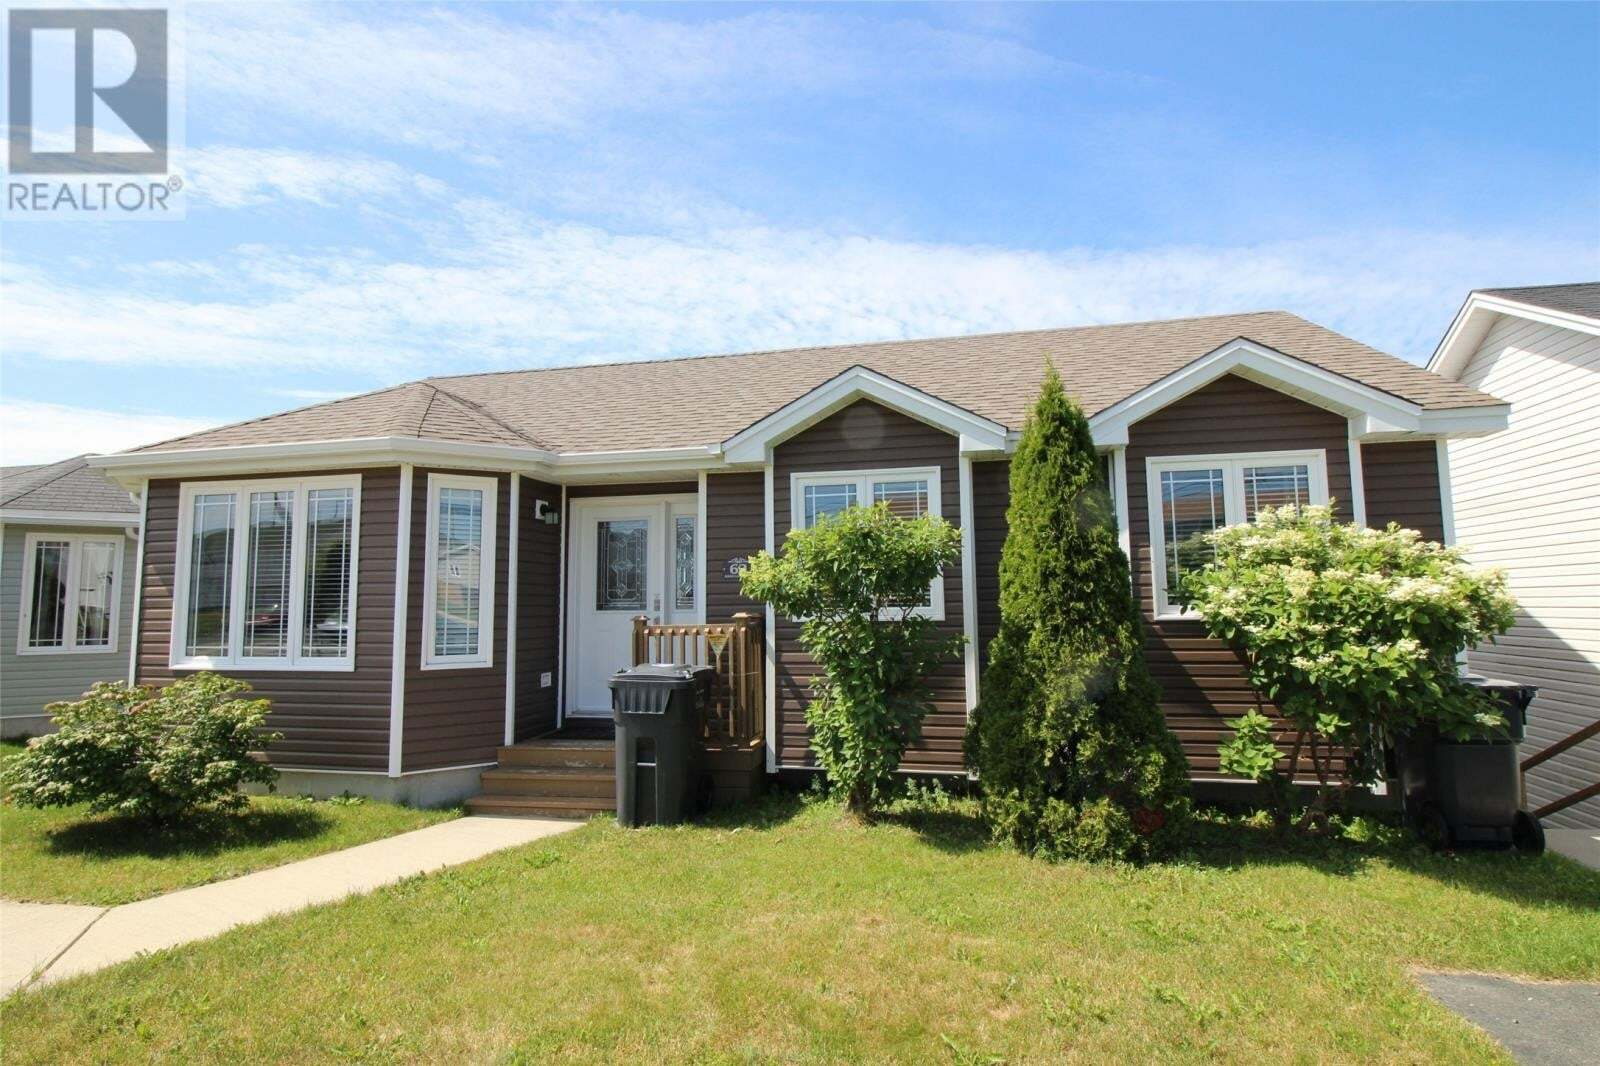 House for sale at 62 Brougham Dr Paradise Newfoundland - MLS: 1218650